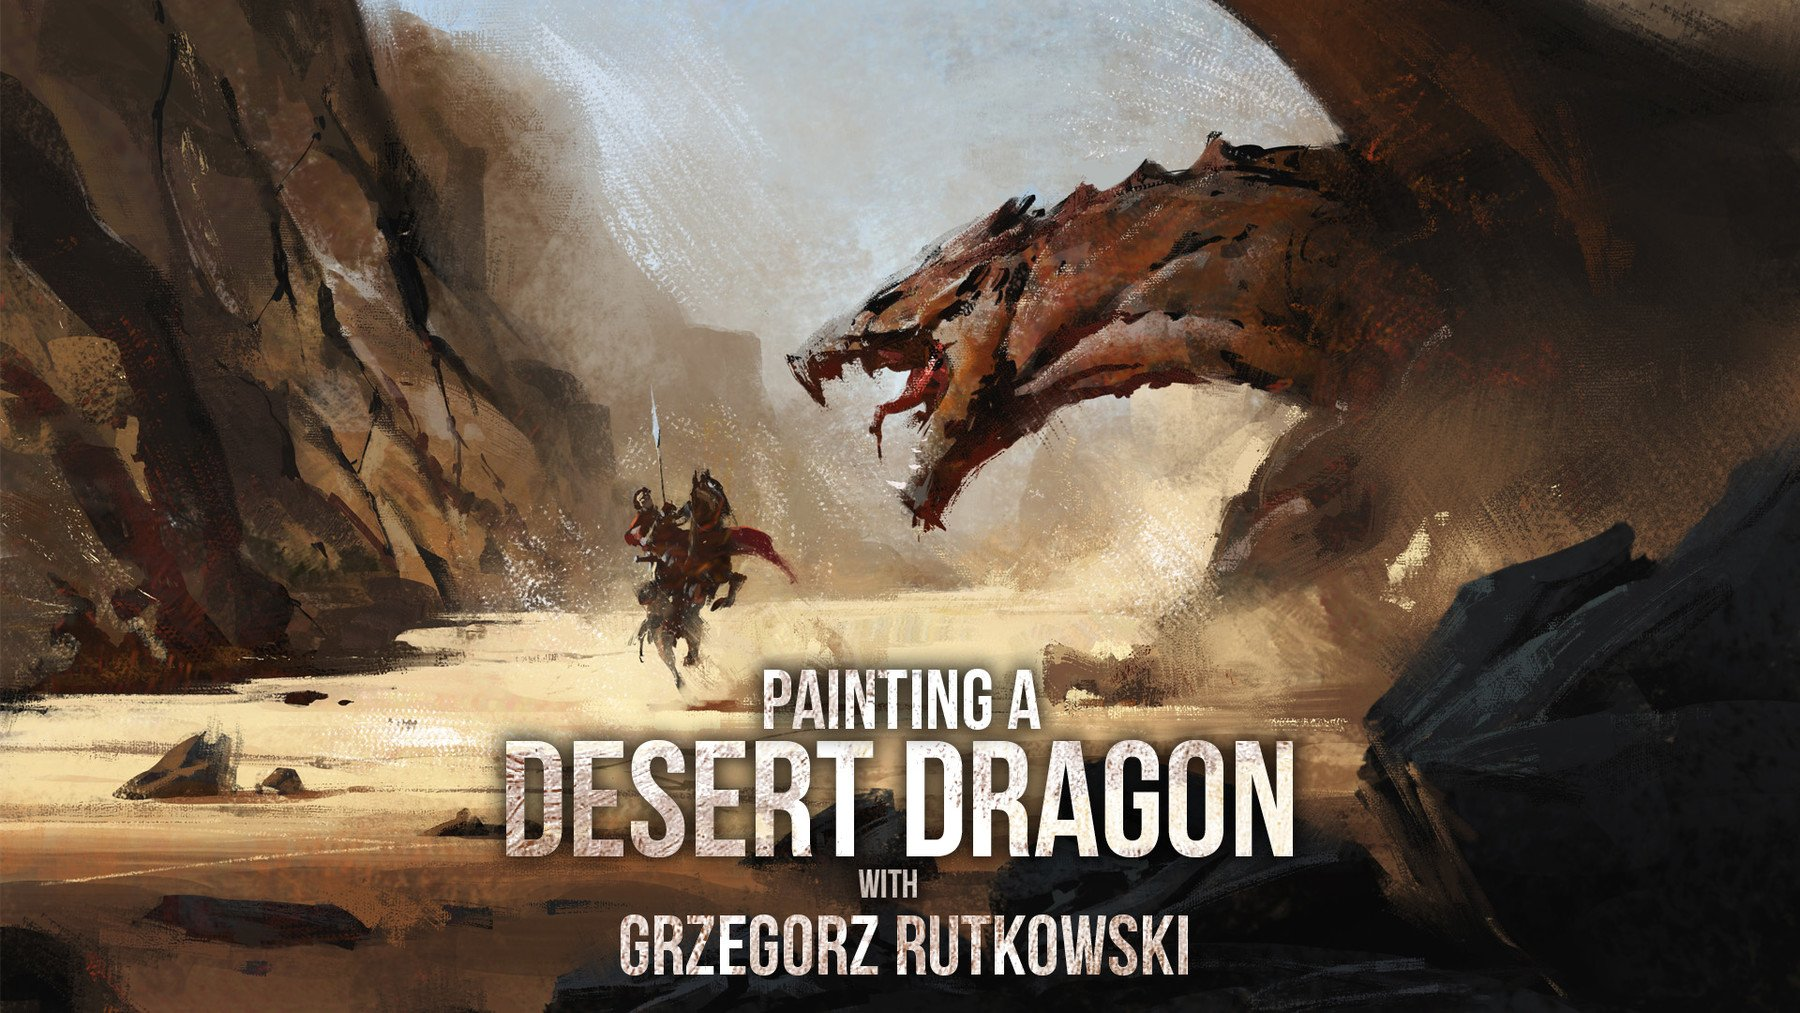 Desert dragon cover 16 9